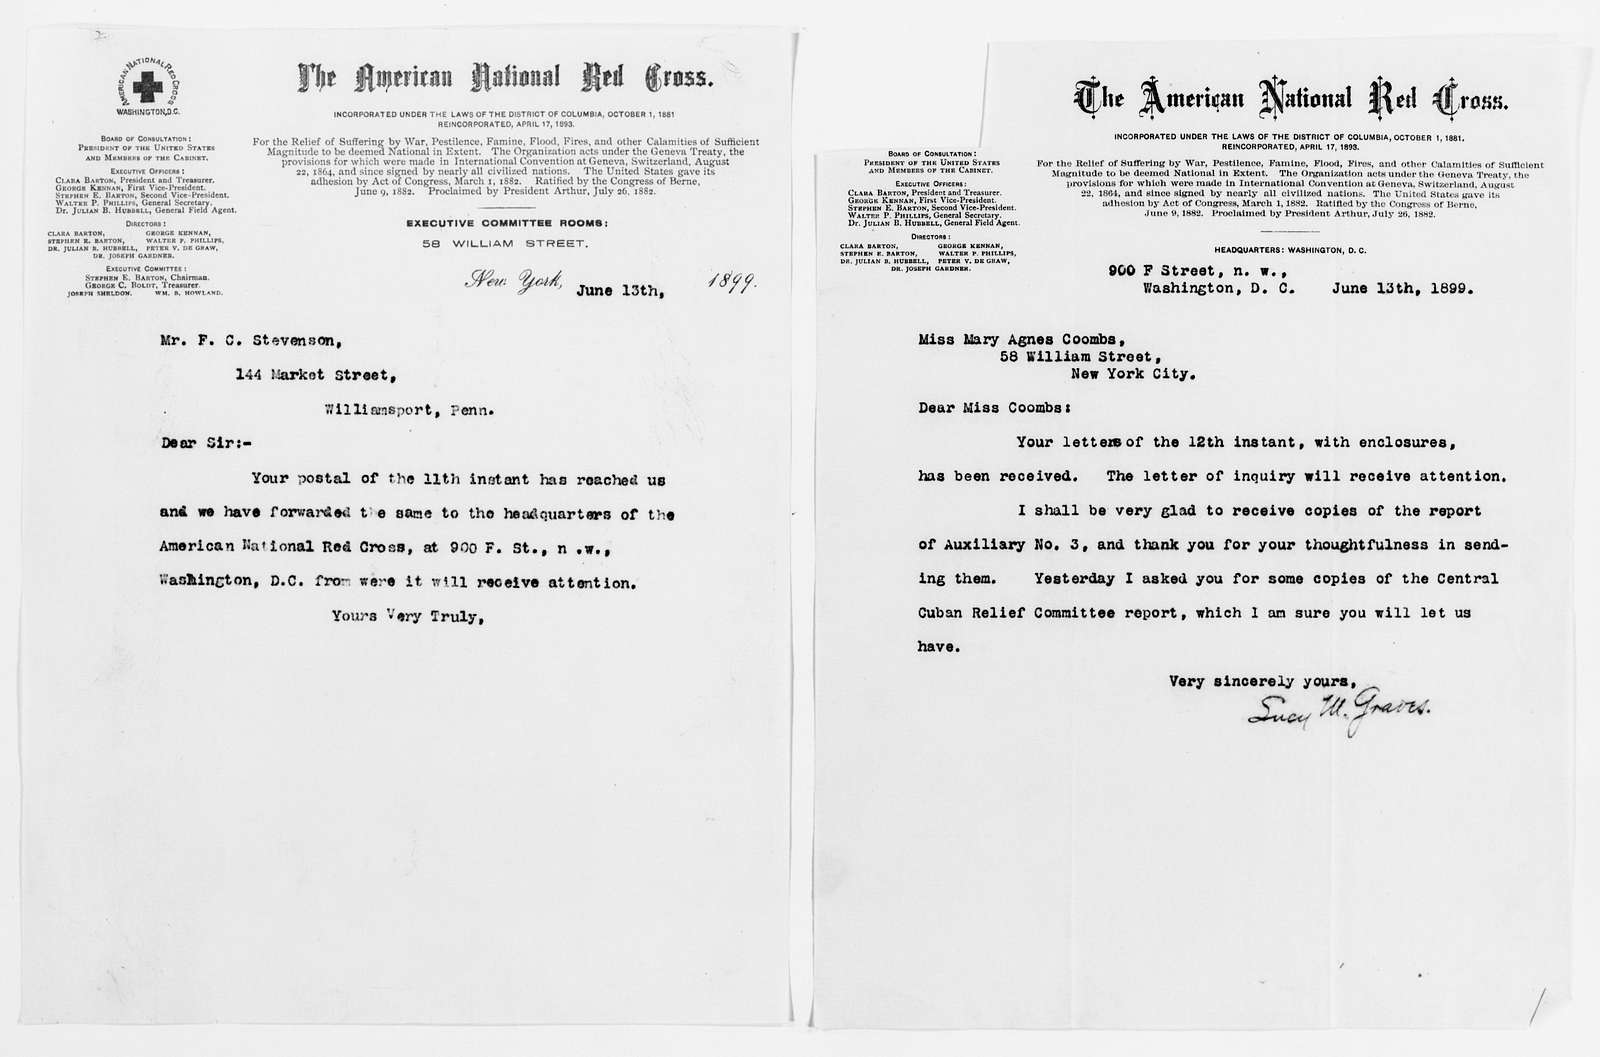 Clara Barton Papers: Red Cross File, 1863-1957; American National Red Cross, 1878-1957; Relief operations; Spanish-American War; Correspondence; General; 1899, Mar.-July